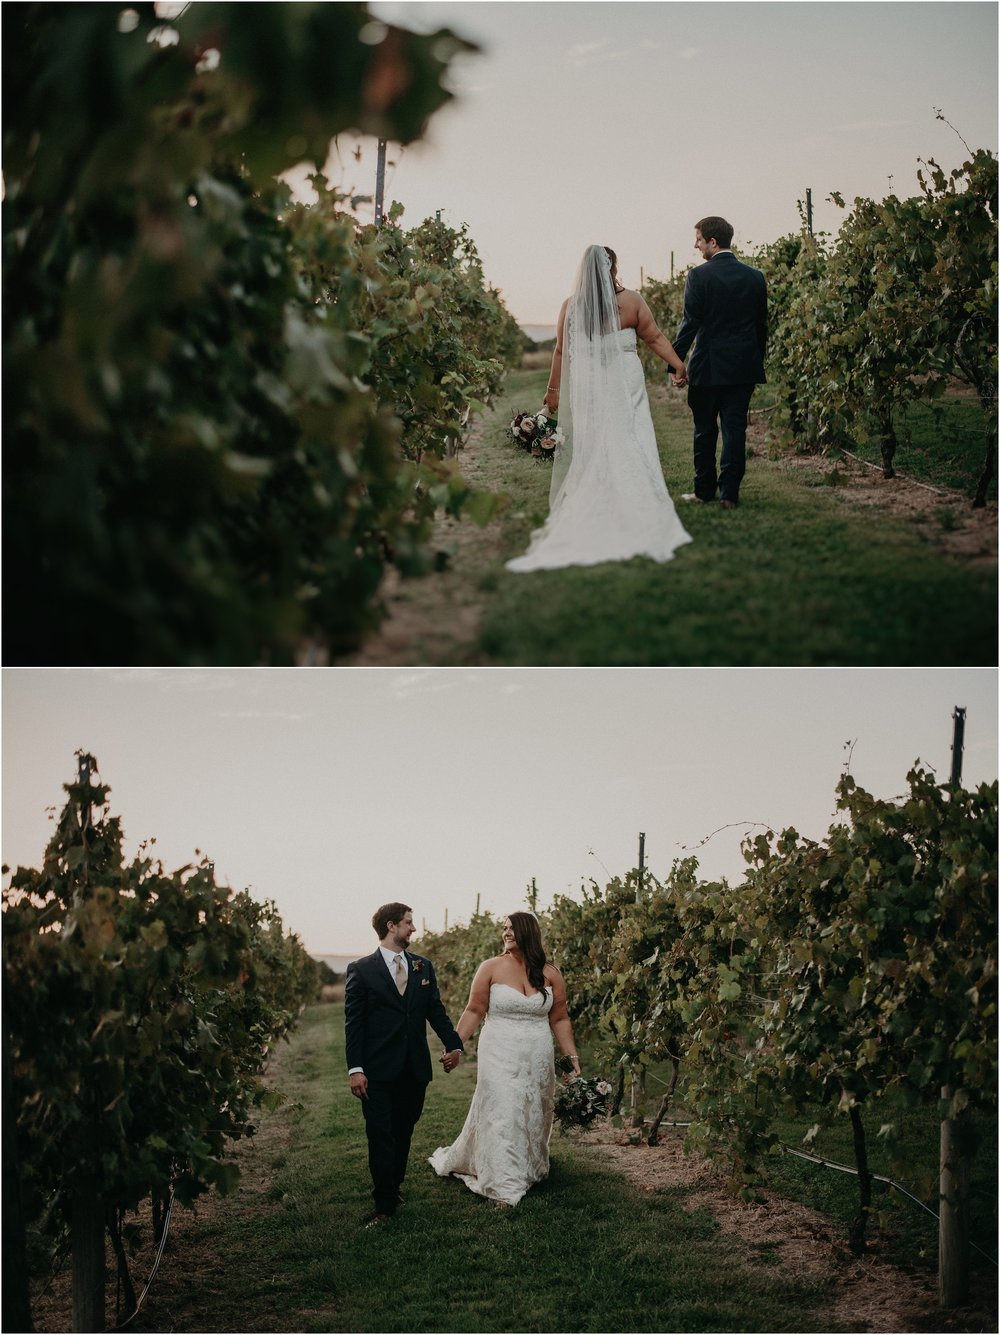 Bride and groom walk hand in hand through vineyards at sunset